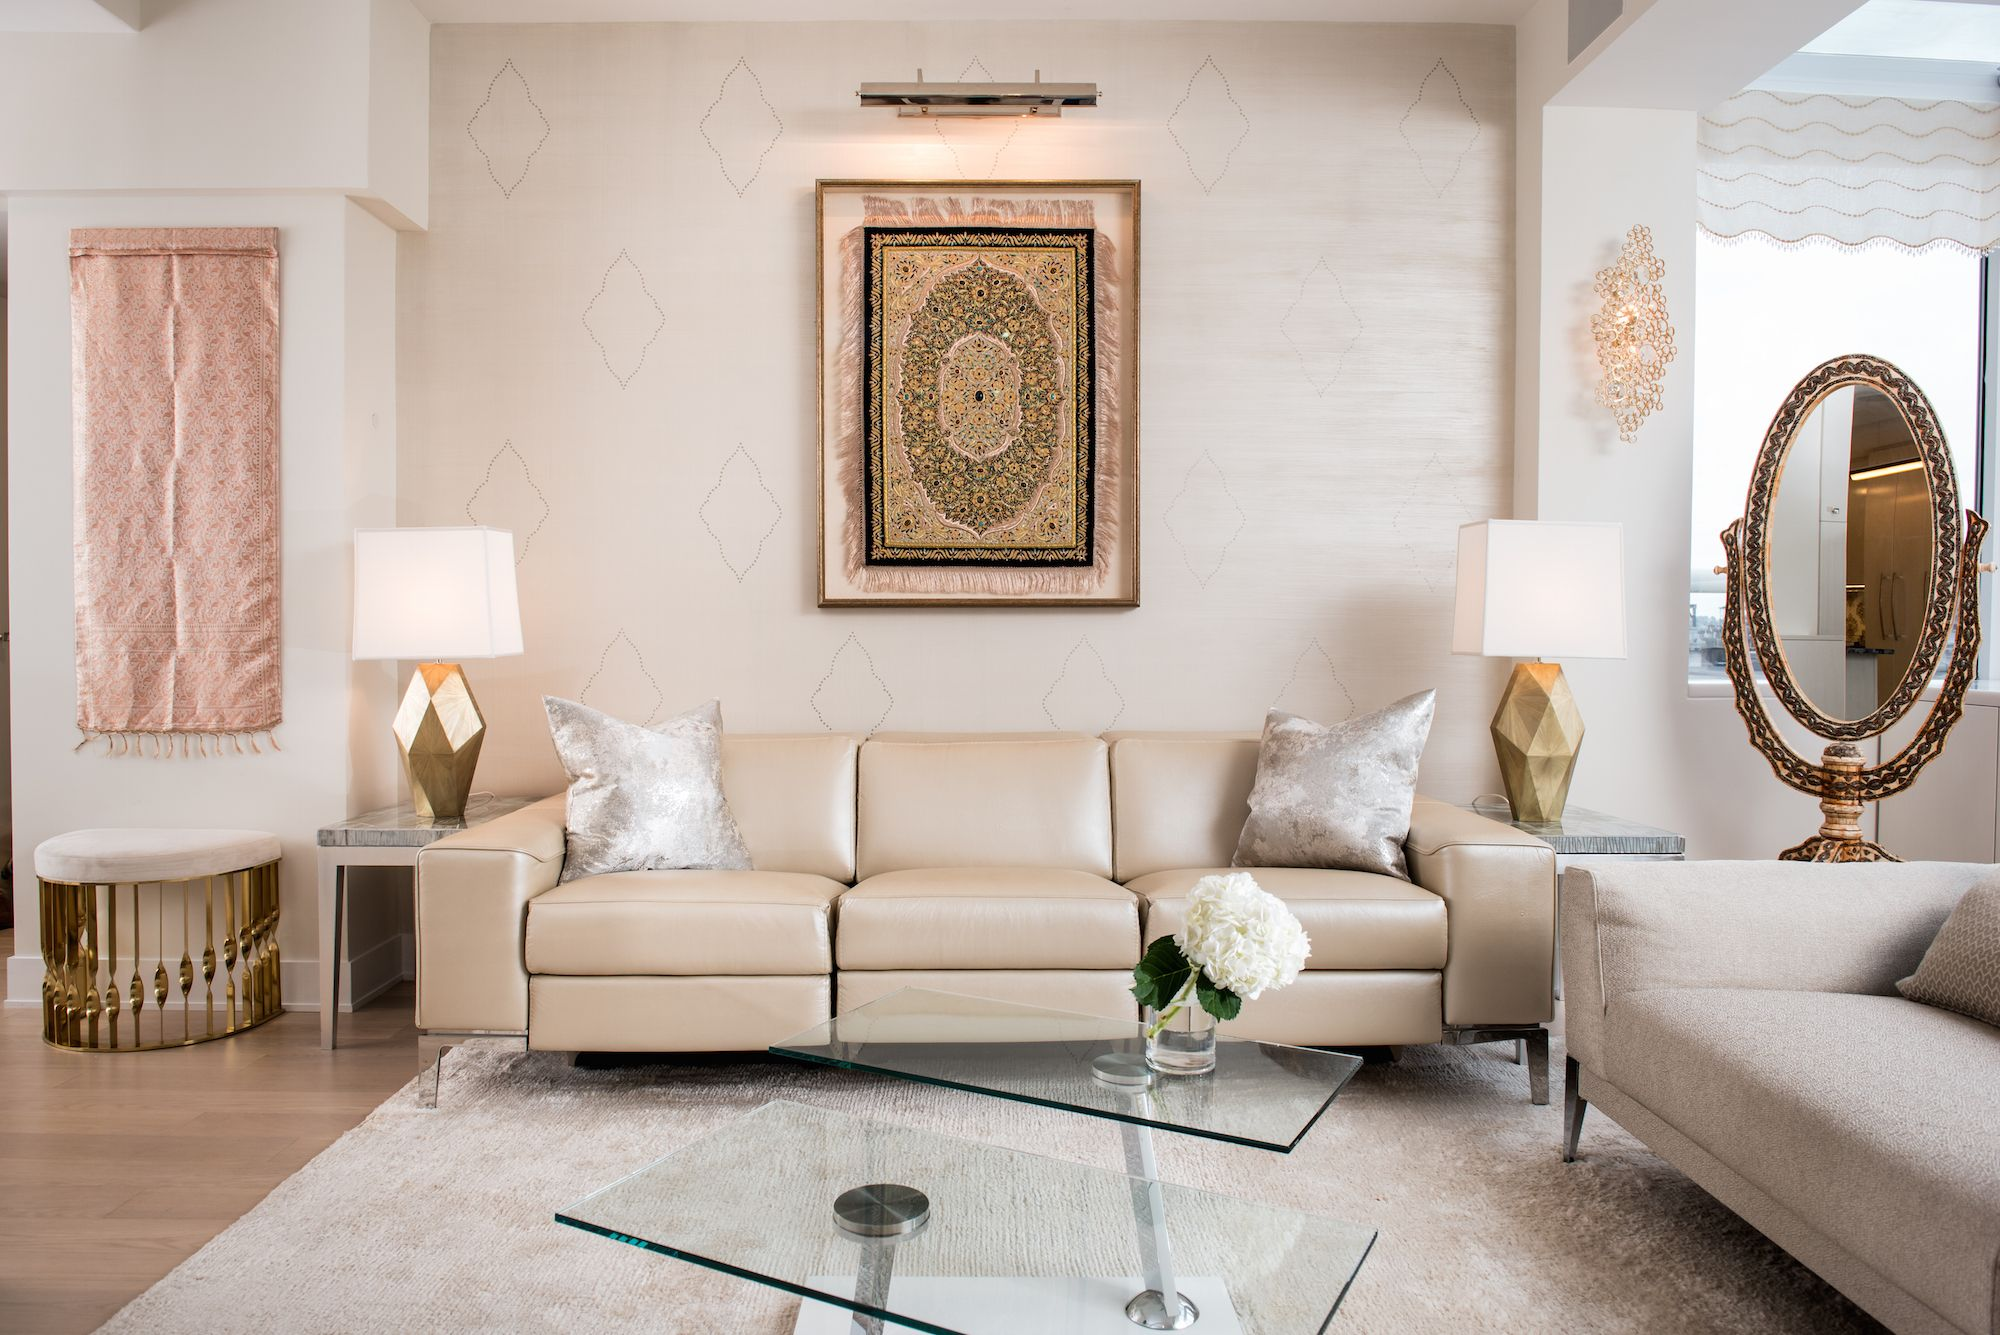 best granite colors for living room india ideas with brown leather suite neutral in a modern home monochromatic